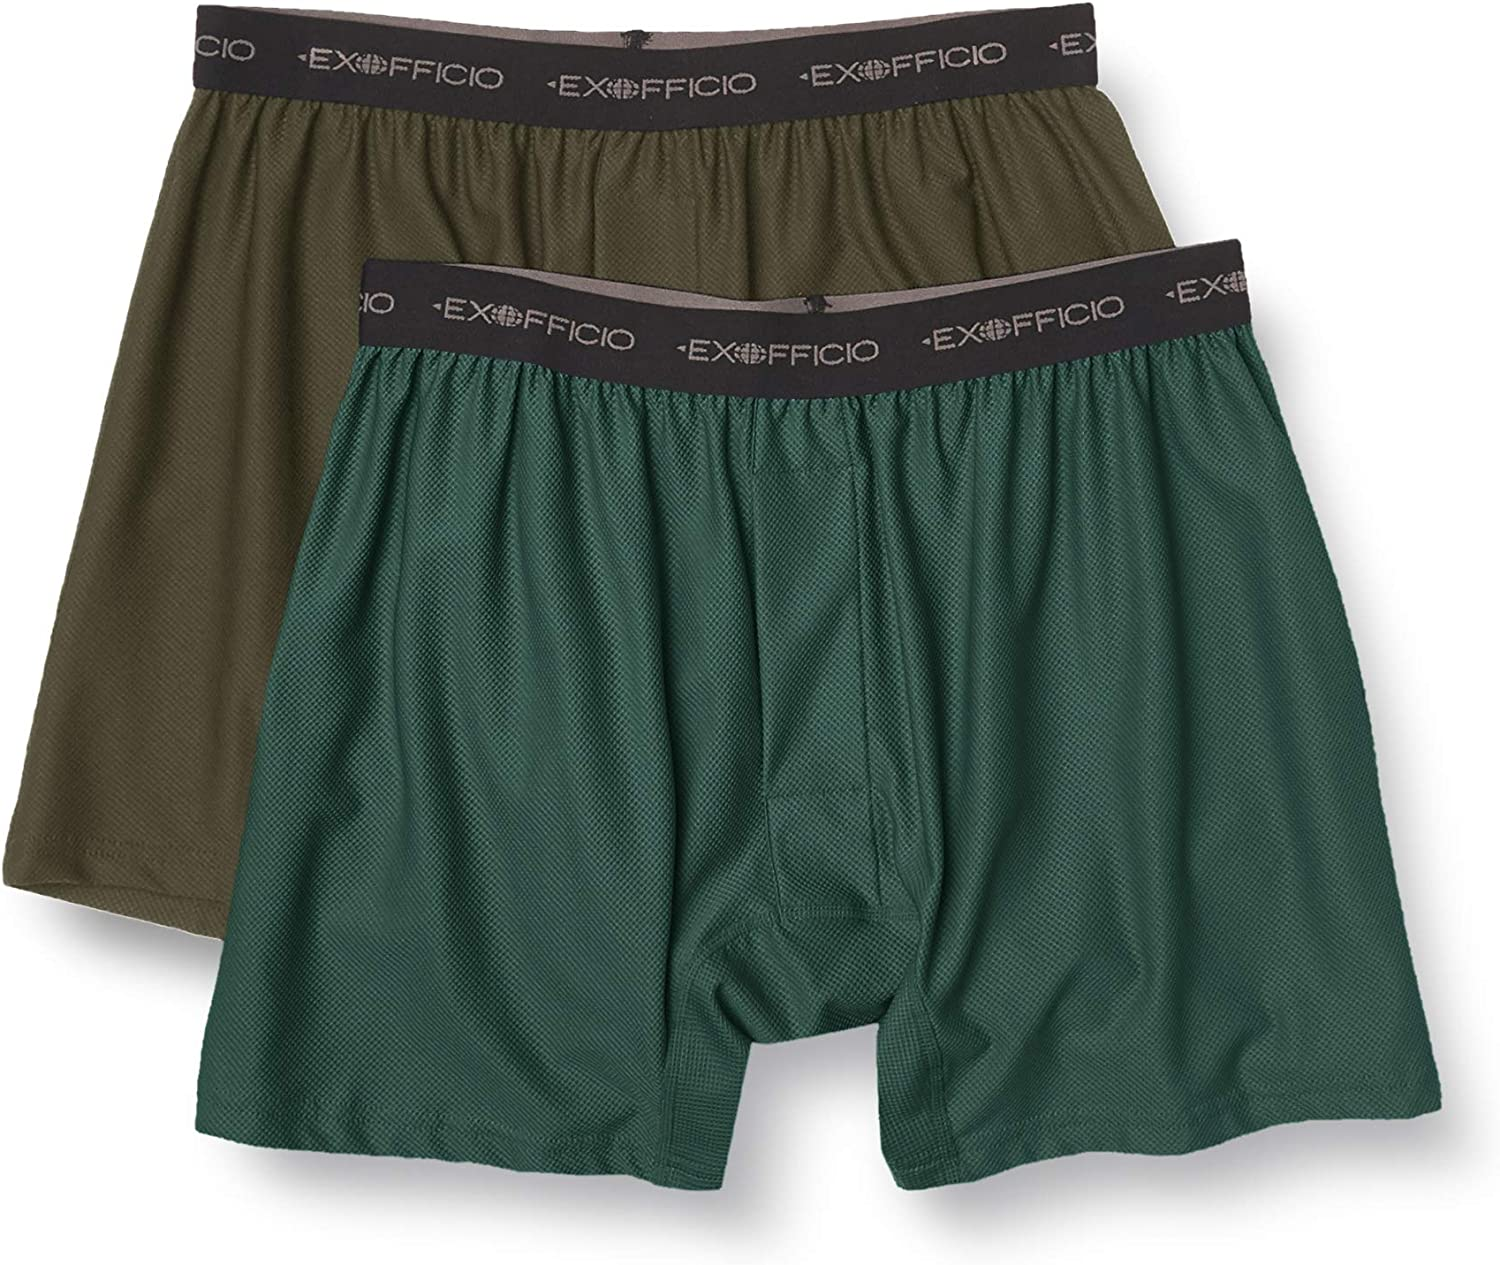 ExOfficio Men's Give-n-go Boxer 2 Pack